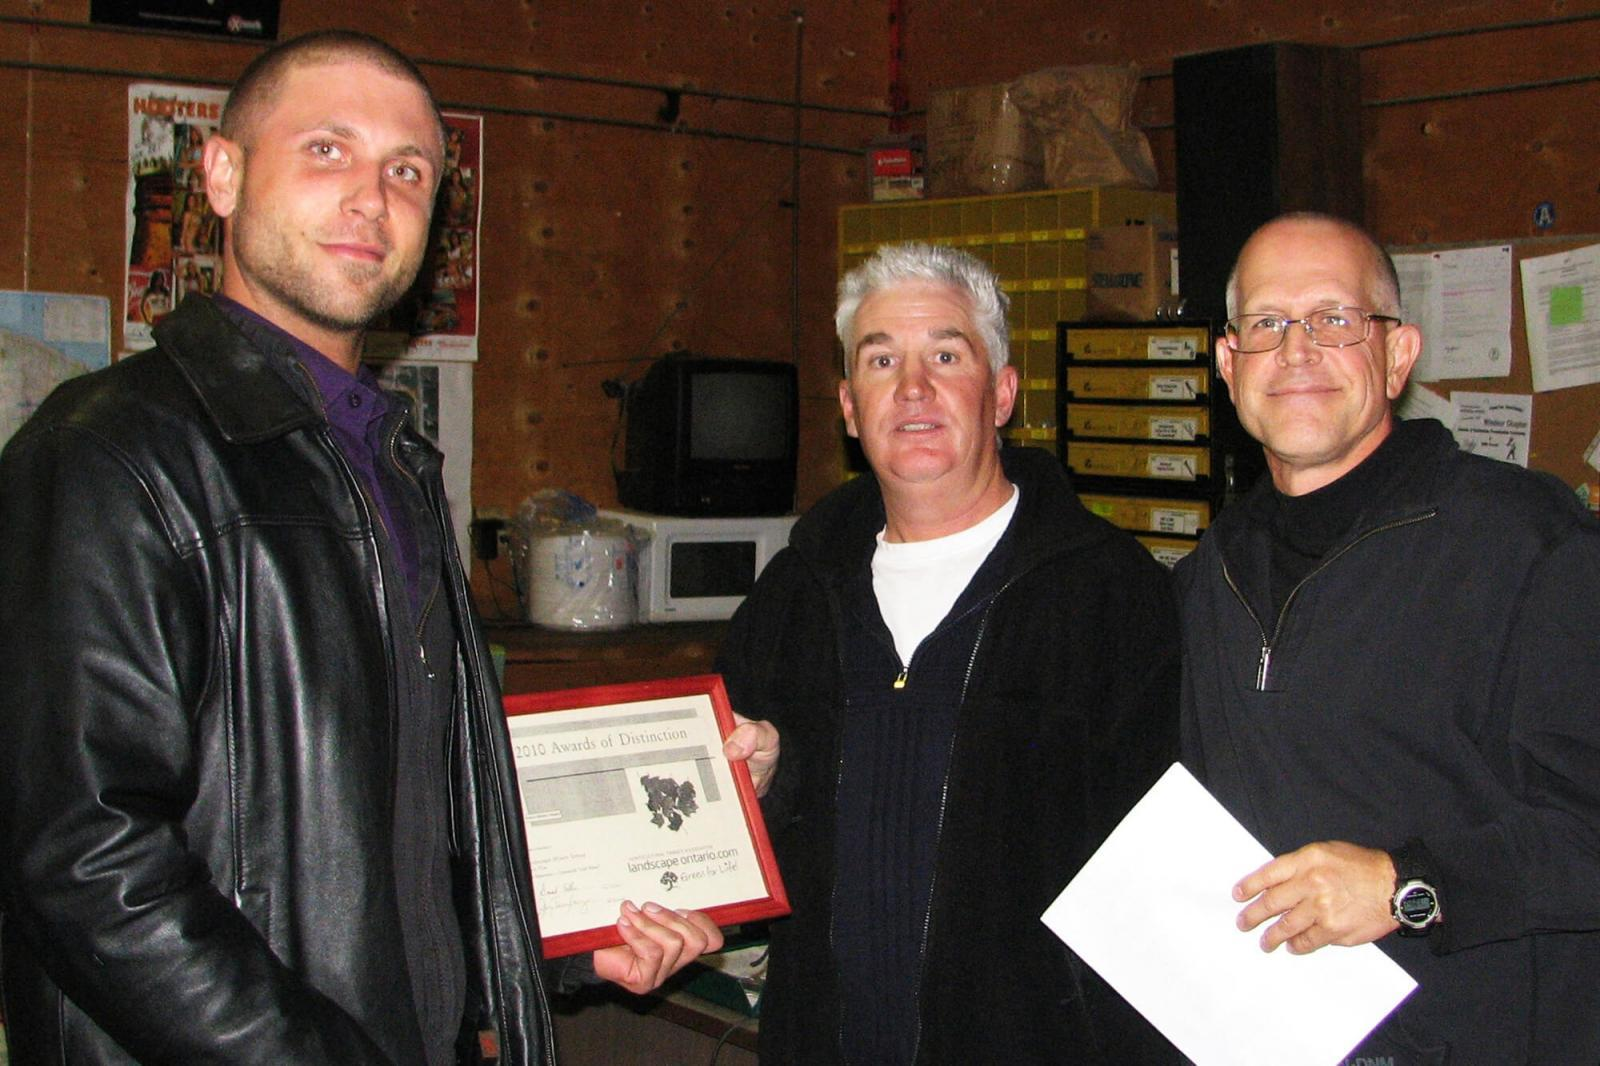 Chris Kaiser of the The Landscape Effects Group receives an award from Mark Williams and Jay Terryberry.